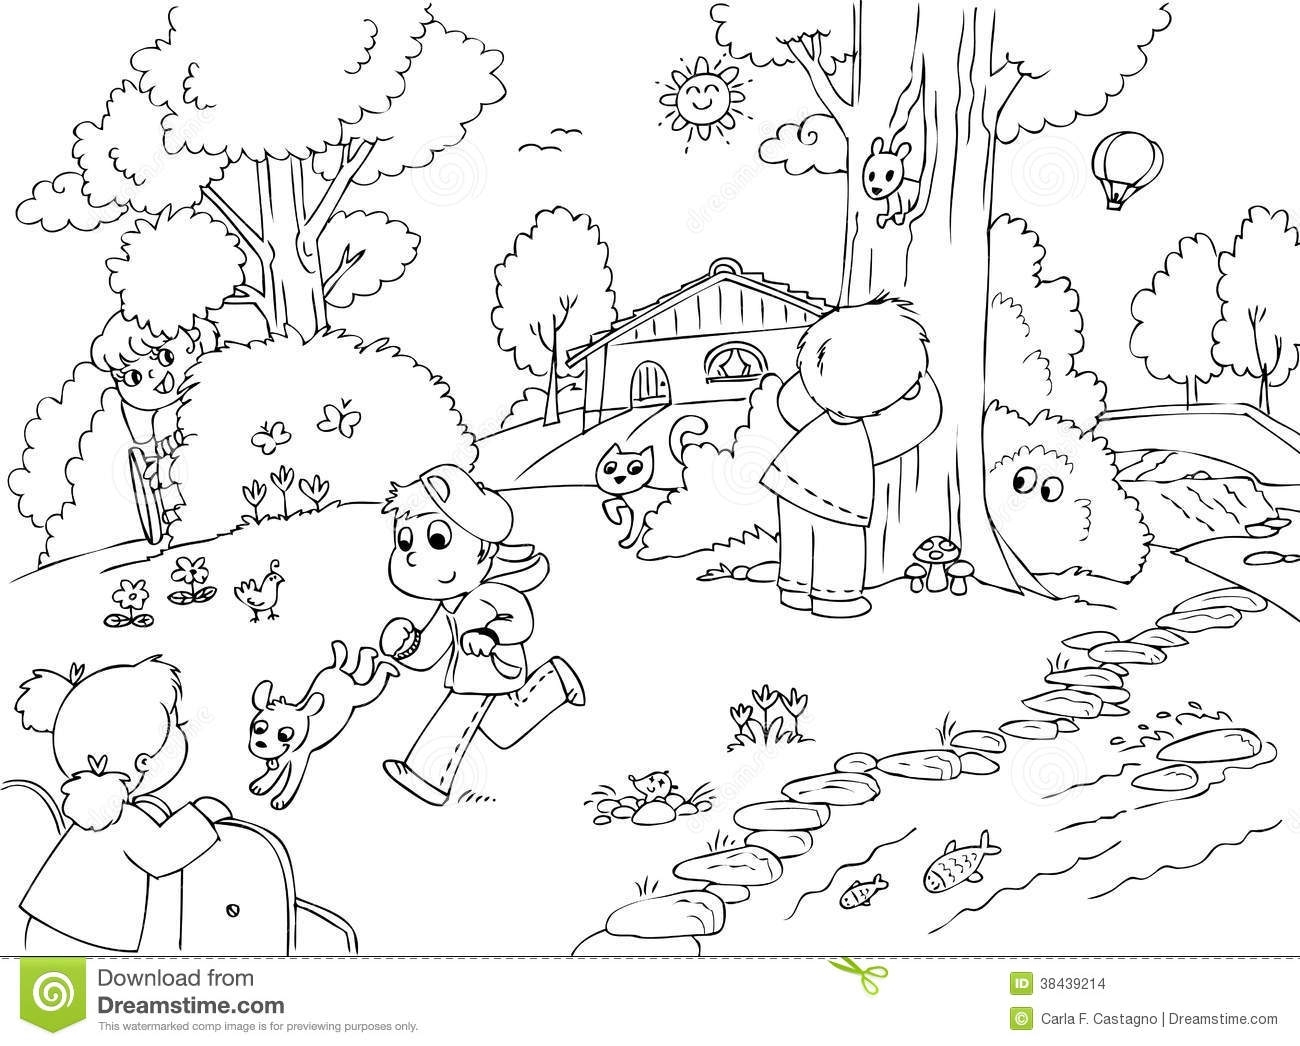 Nature Clipart Black And White Nature Clipart For Kids Black.